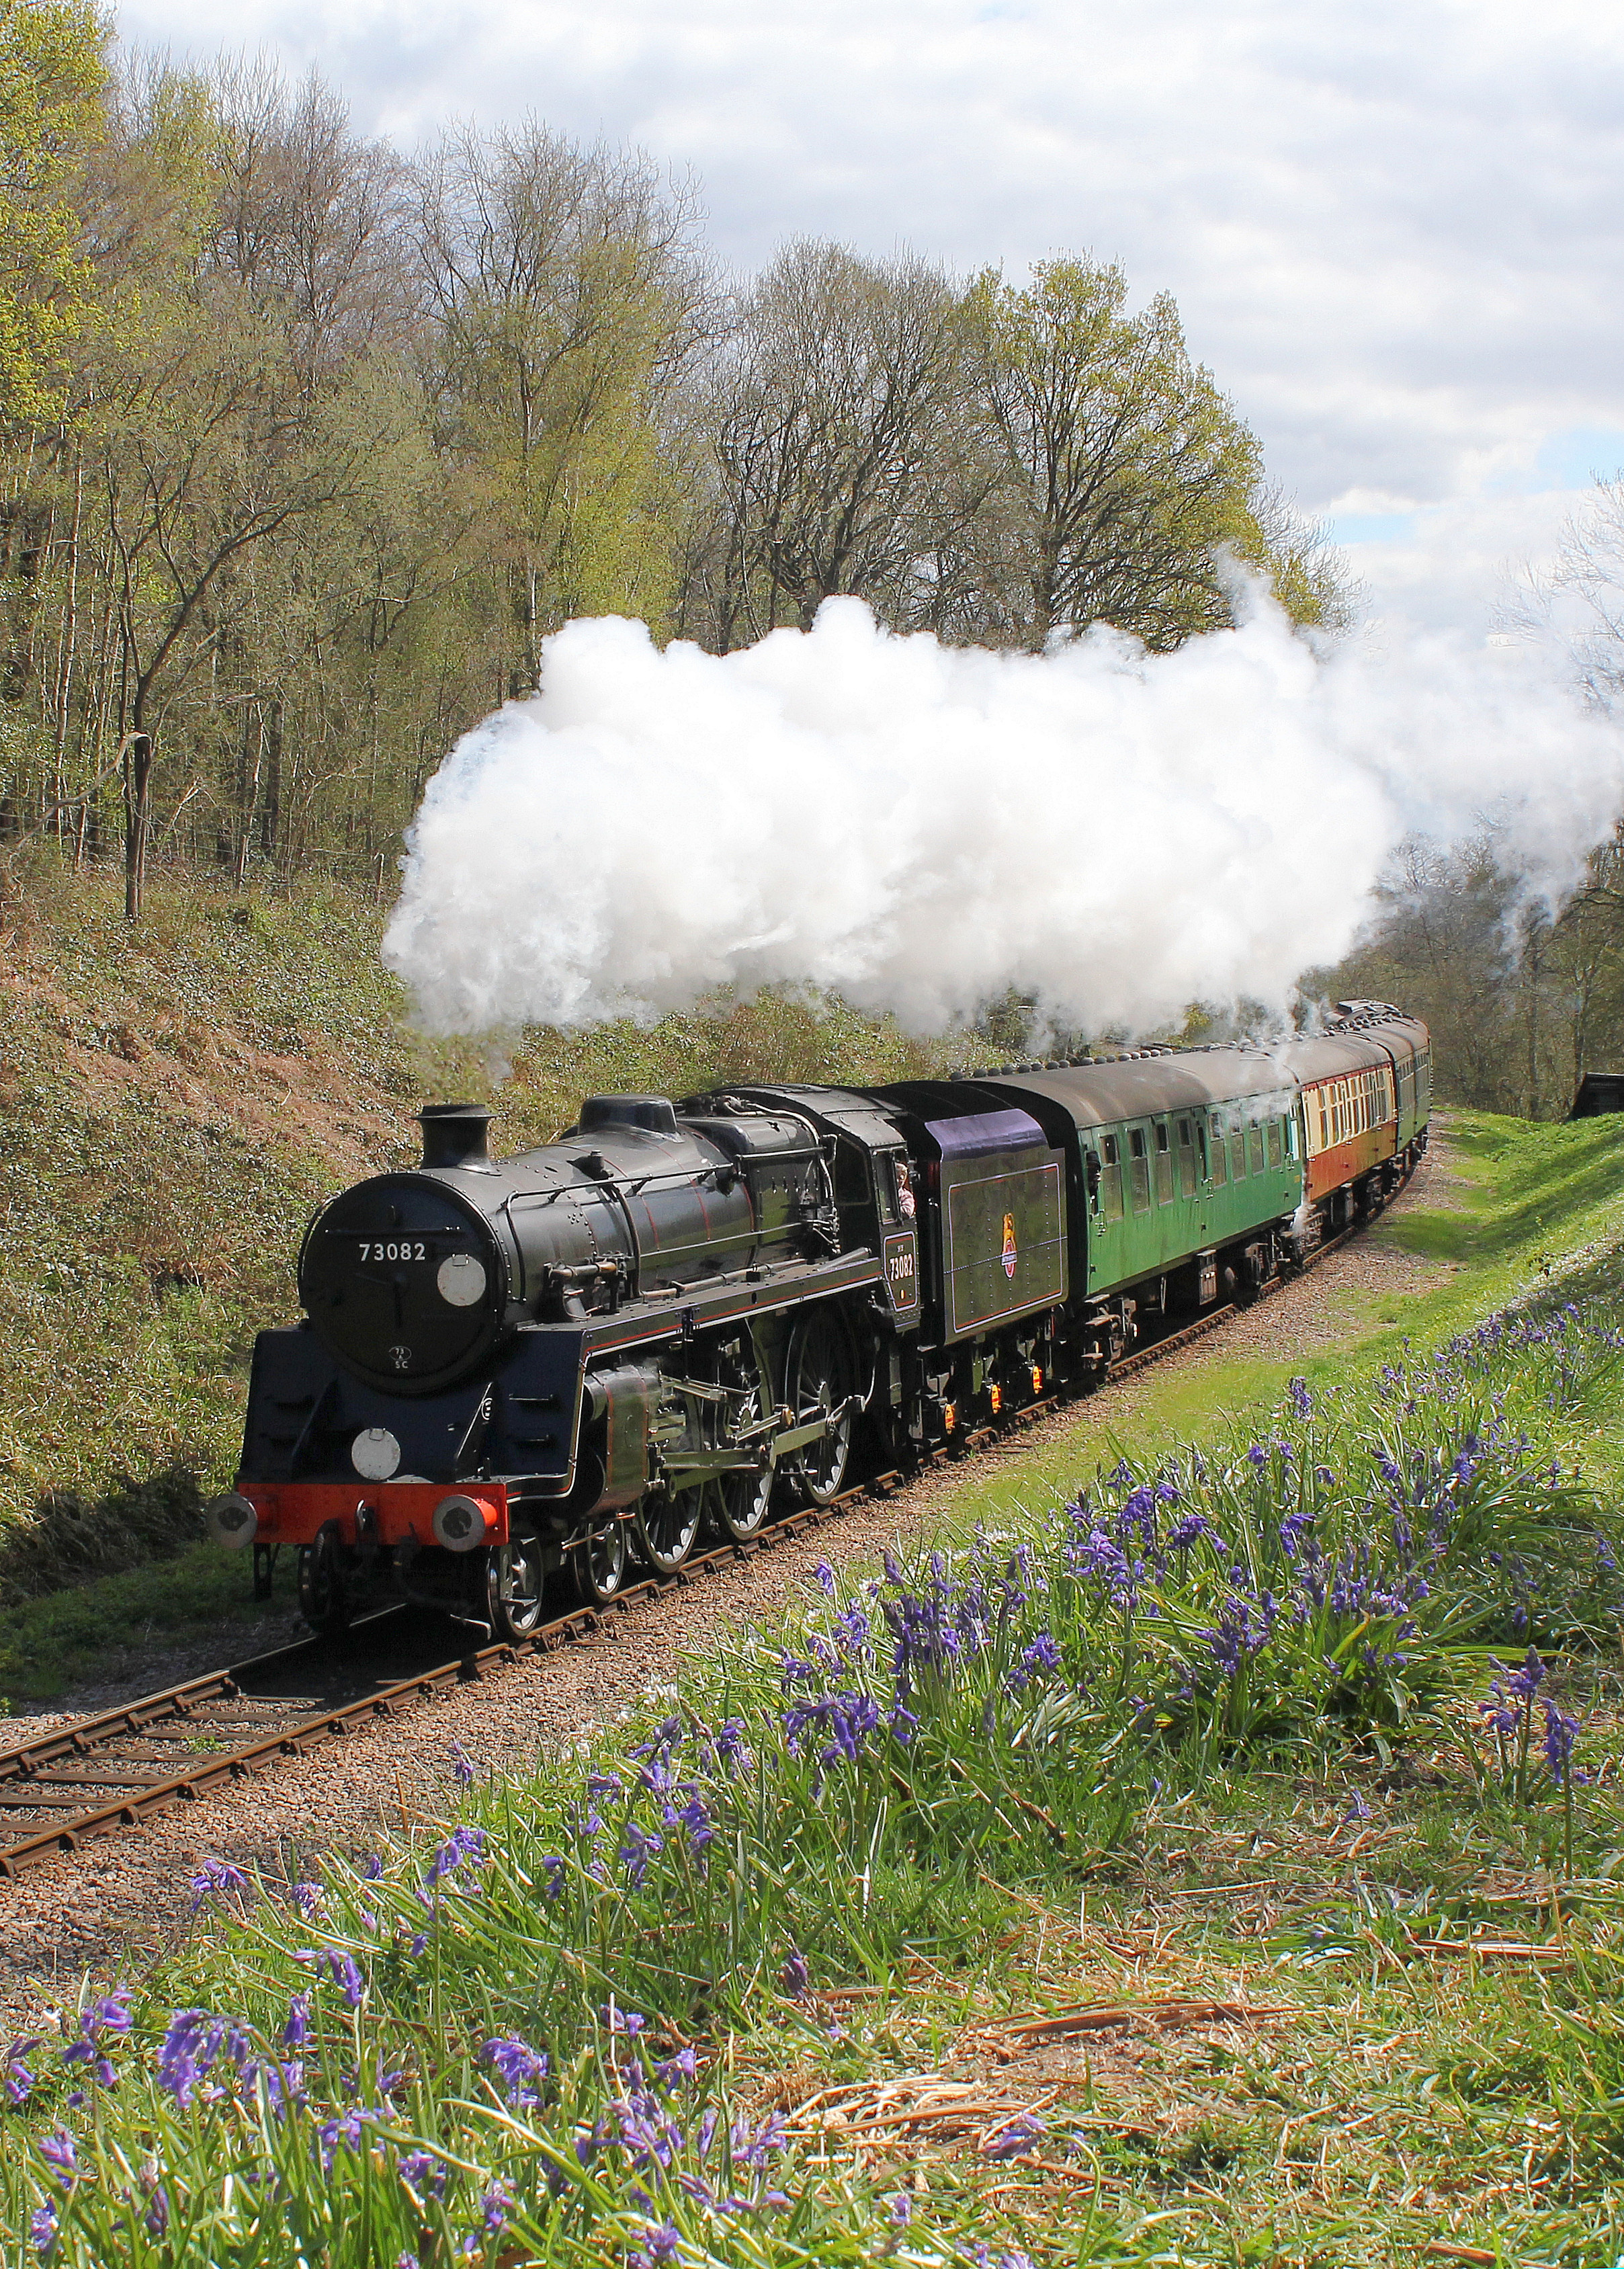 bluebell_railway_publicity_photo_peter_edwards_june2020_3376